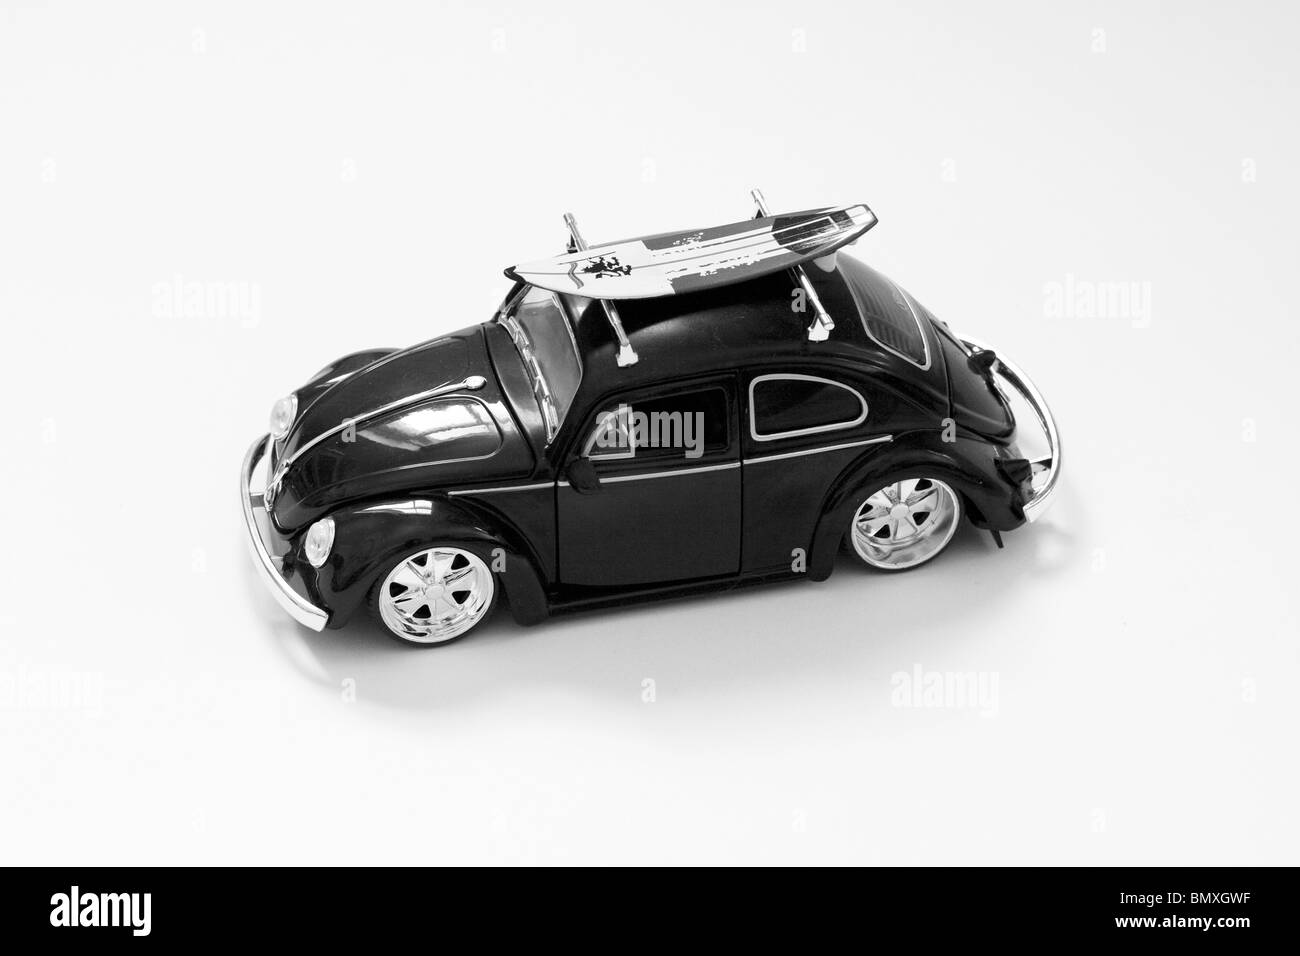 A Die Cast Model of a Child's Toy car On White Card - Stock Image